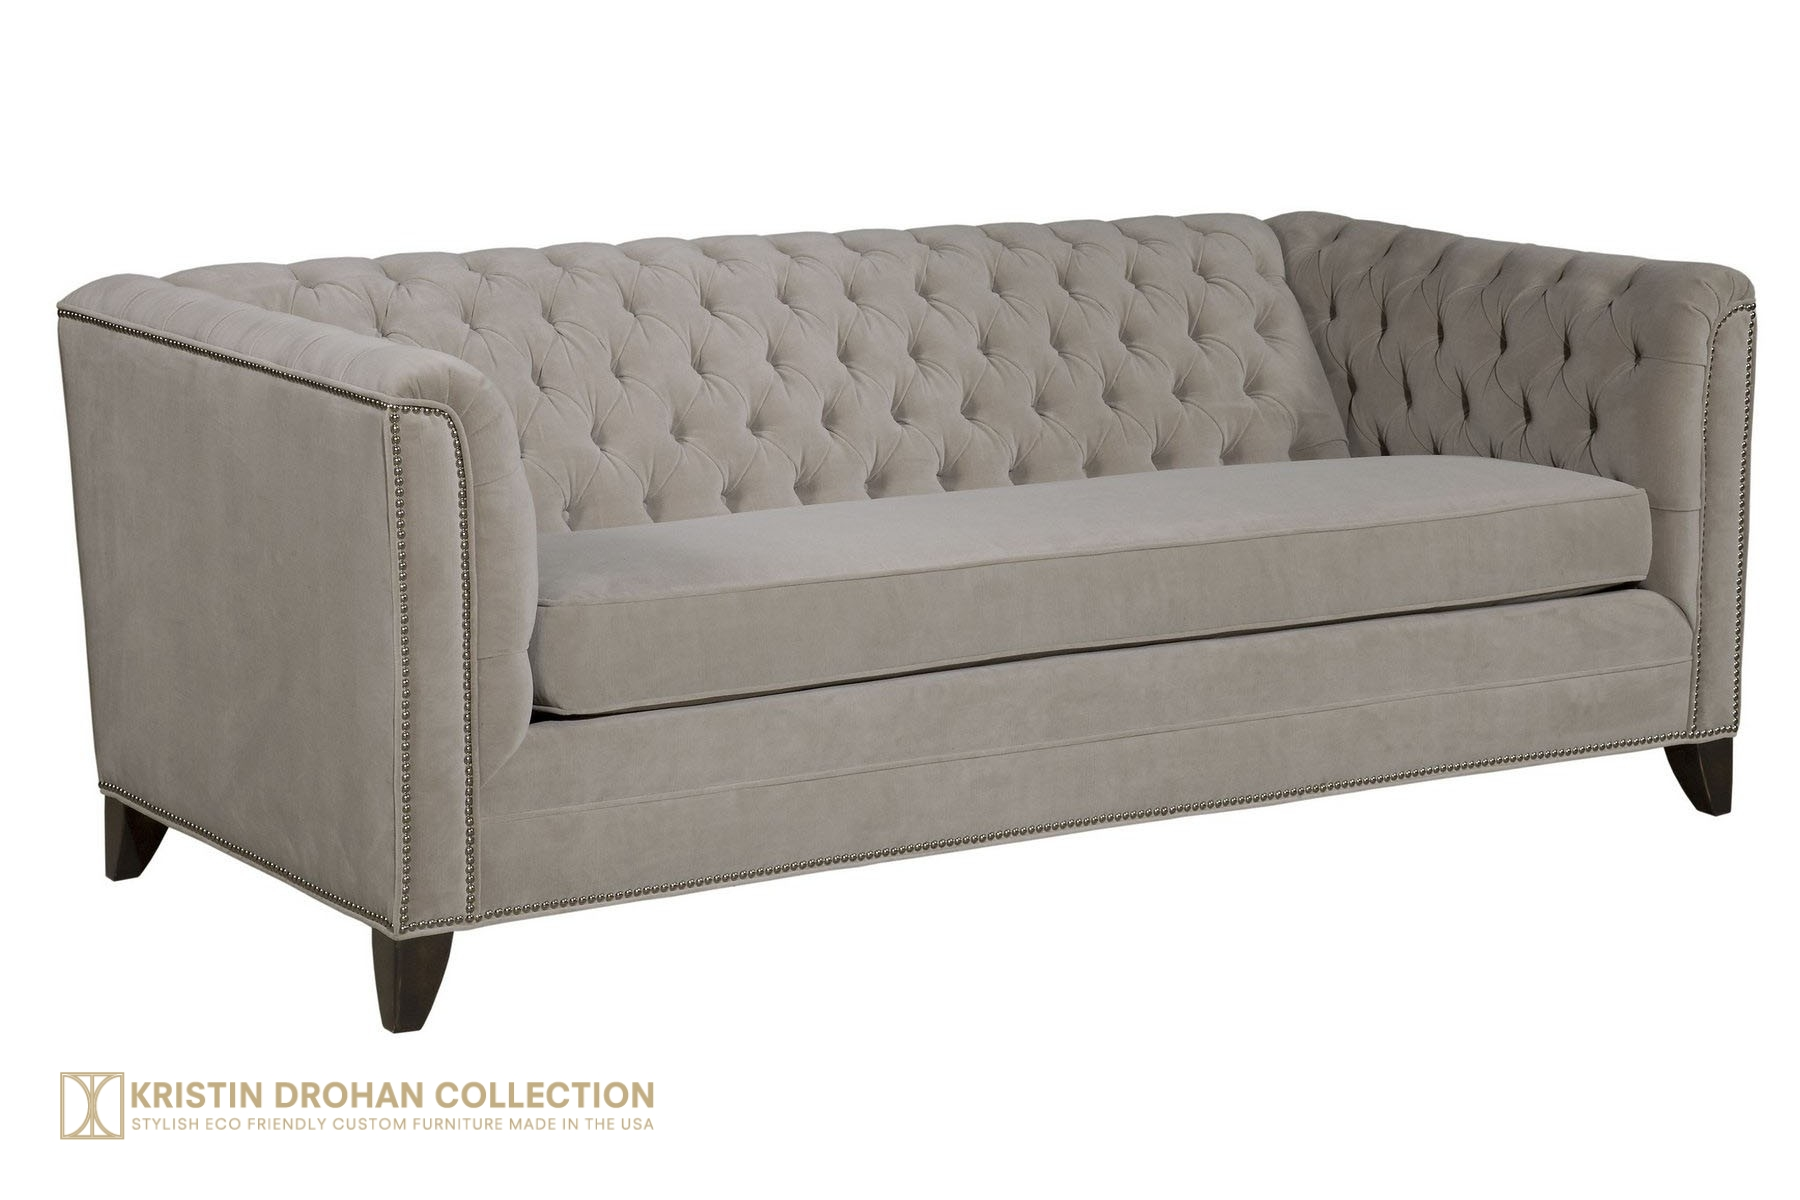 Chip Chesterfield Designer Chesterfield Sofa from The Kristin